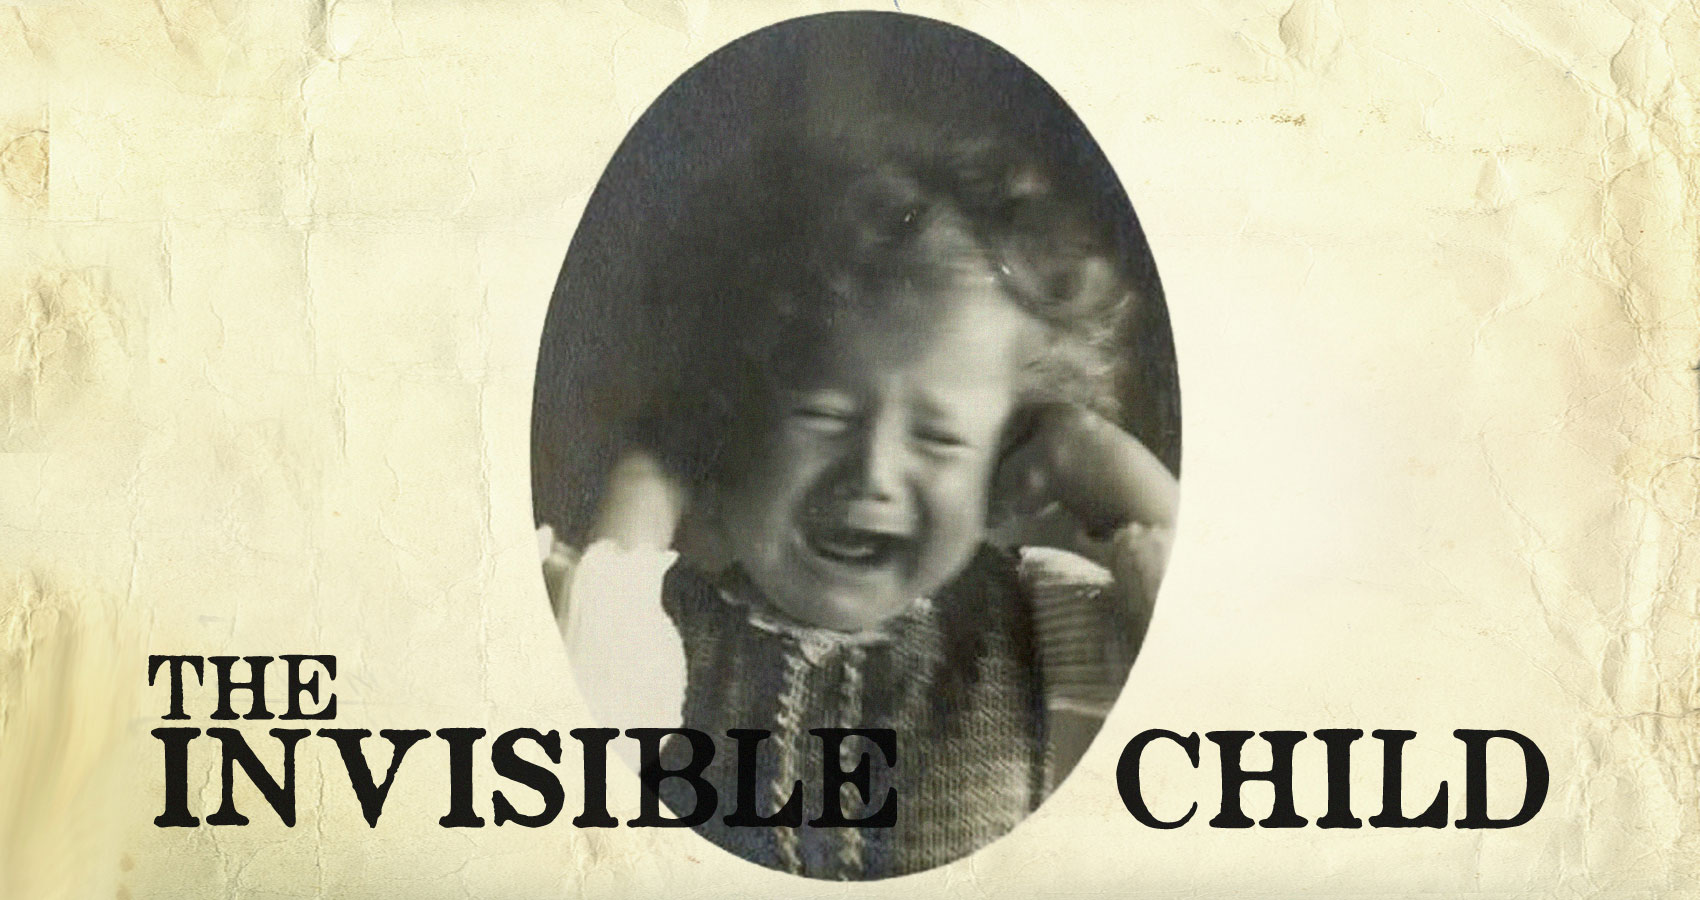 The Invisible Child written by LadyLily at Spillwords.com